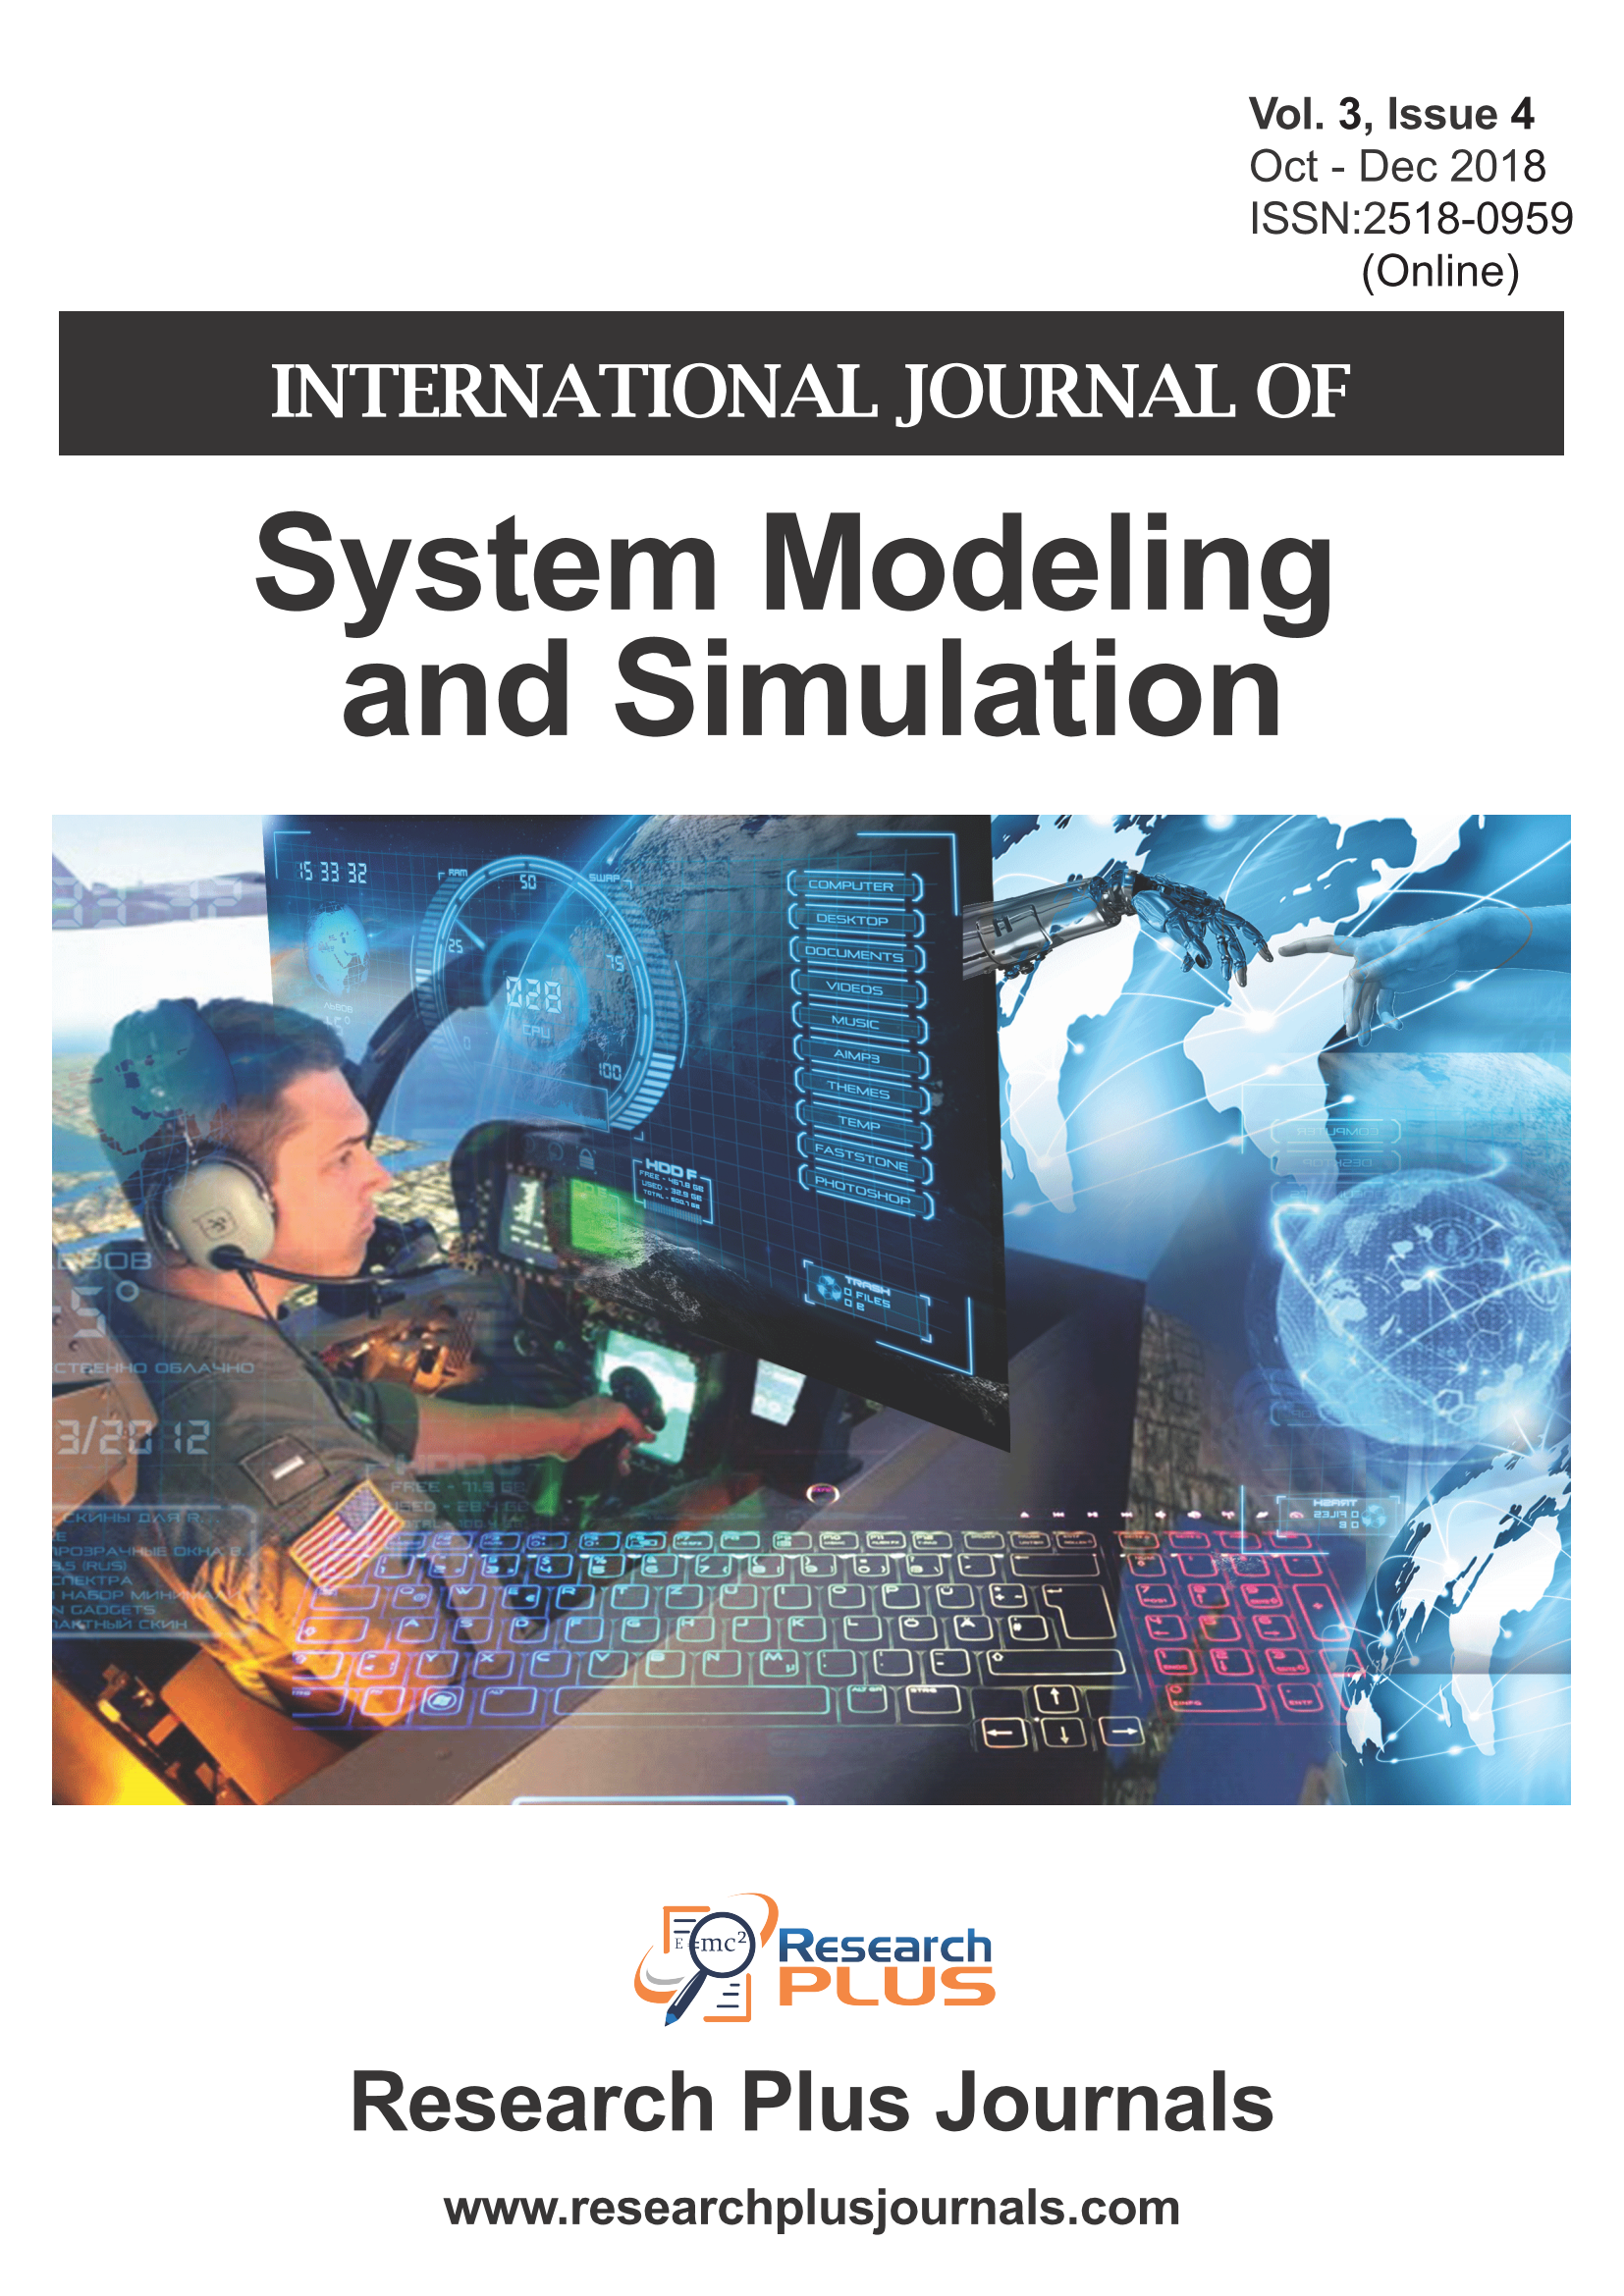 Volume 3, Issue 4, International Journal of System Modeling and Simulation (IJSMS)  (Online ISSN: 2518-0959)